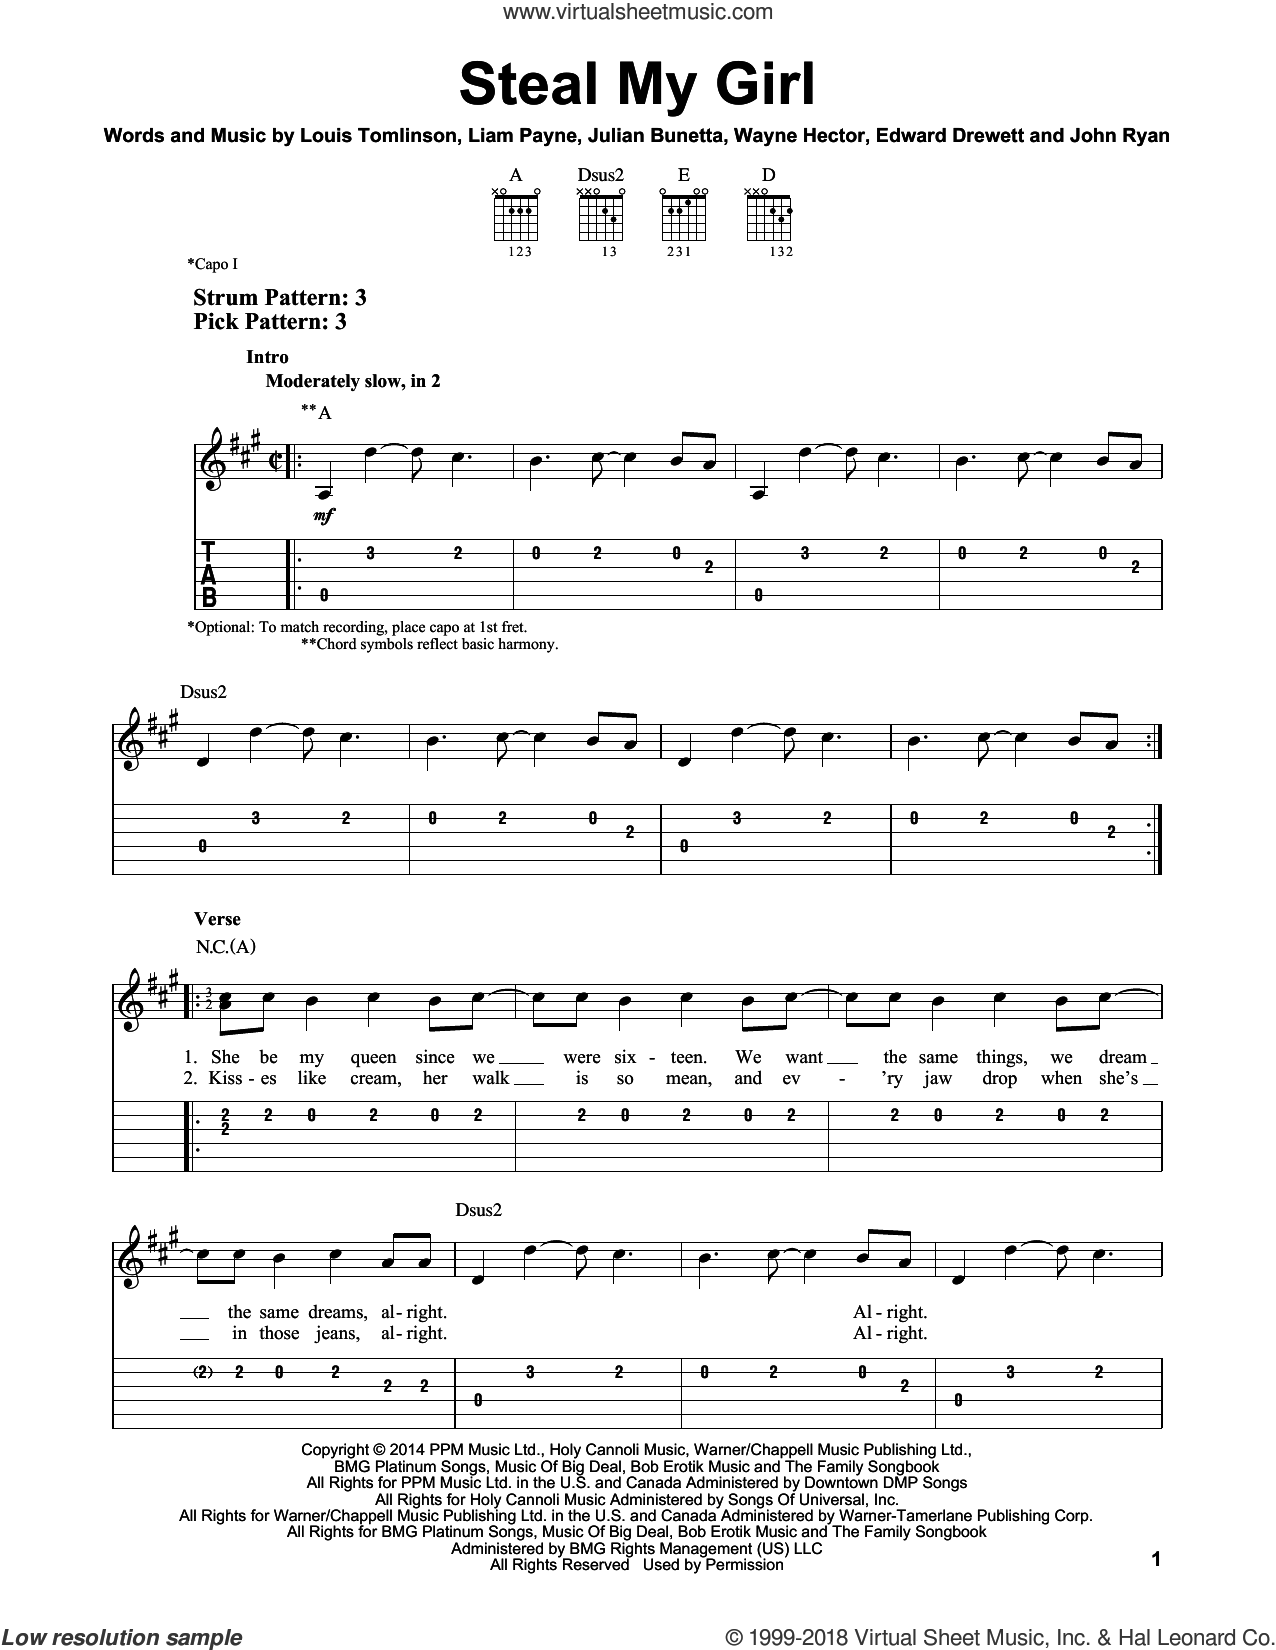 Steal My Girl sheet music for guitar solo (easy tablature) by One Direction, Edward Drewett, John Ryan, Julian Bunetta, Liam Payne, Louis Tomlinson and Wayne Hector, easy guitar (easy tablature). Score Image Preview.